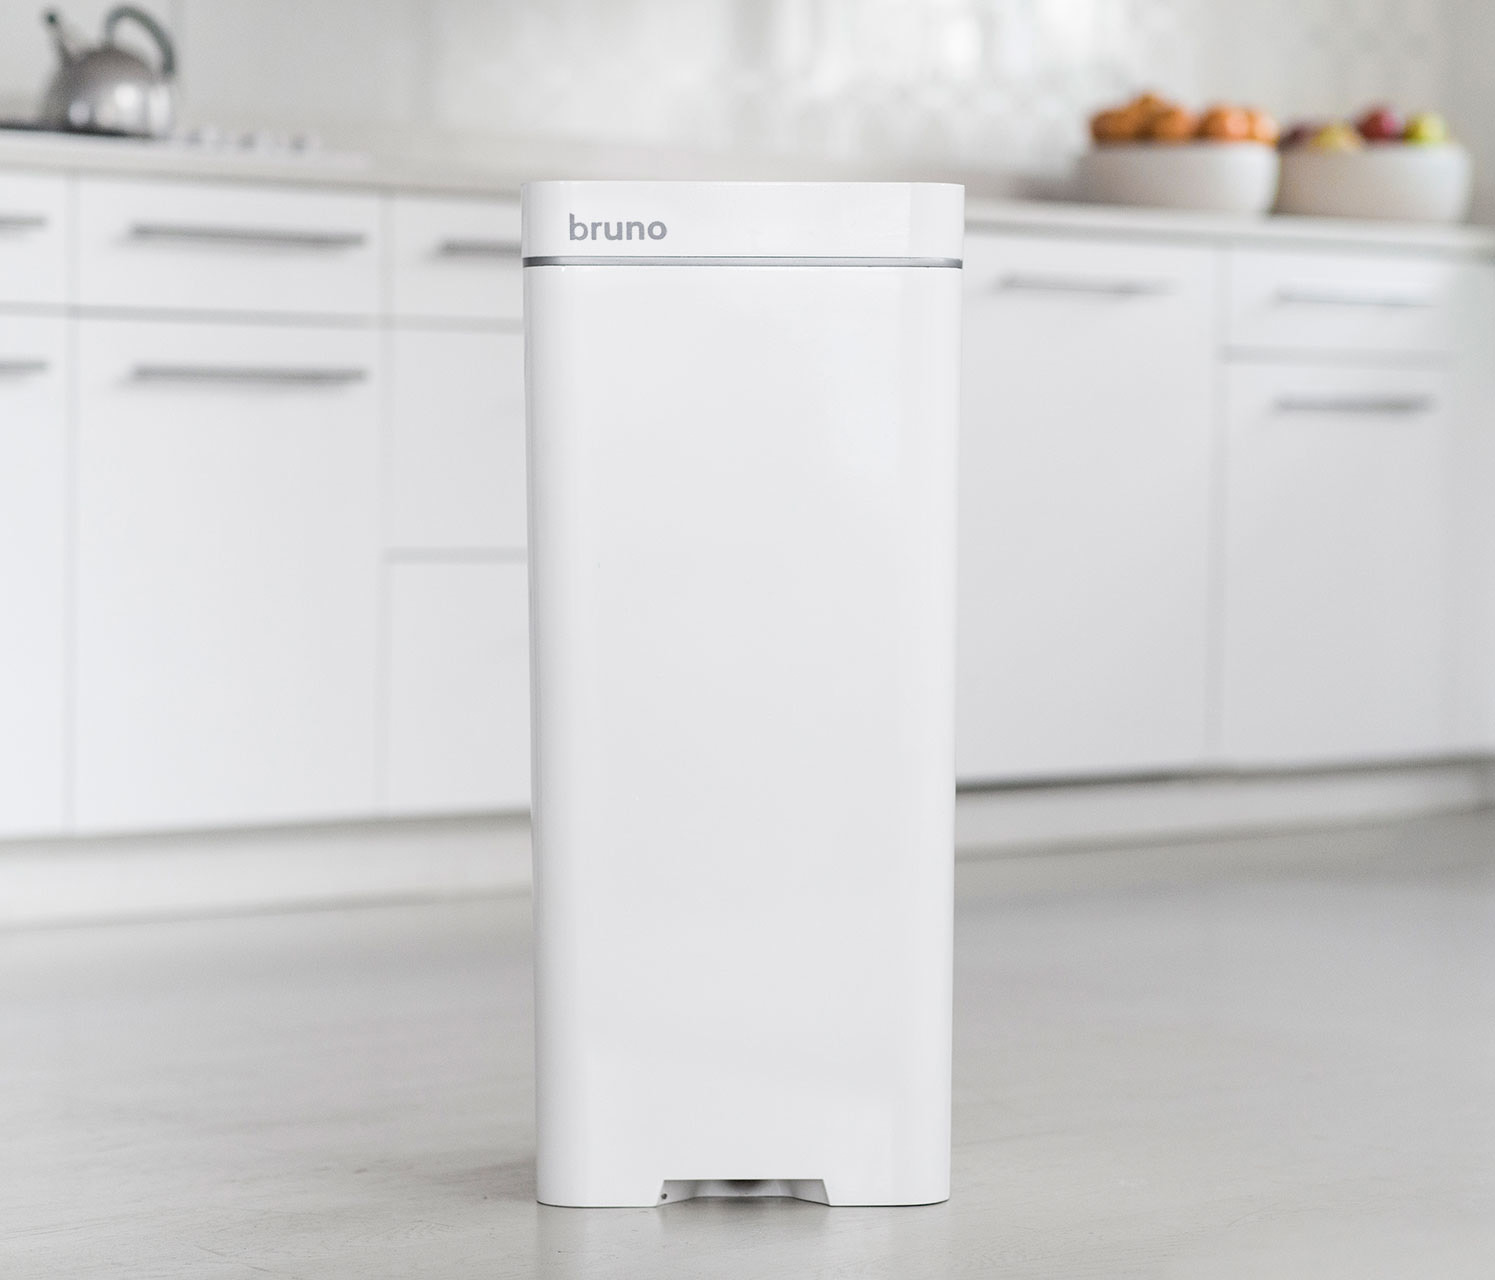 Bruno: The Smart Kitchen Trashcan Reminds You When to Take Out the Trash